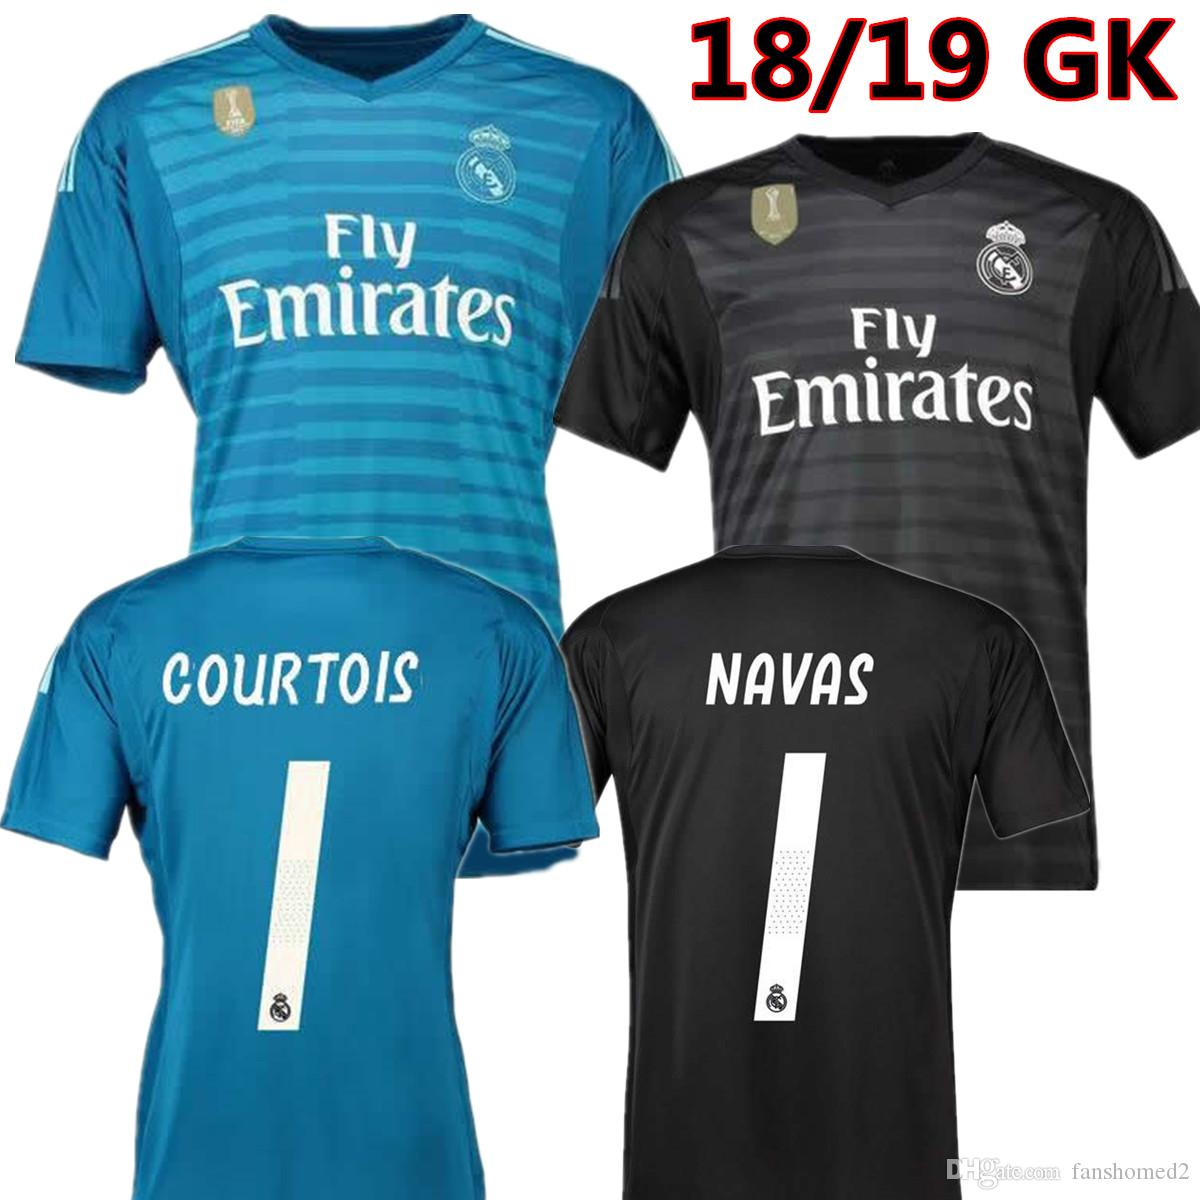 ab02044f3b5d6 2018 2019 Real Madrid Goalkeeper Jerseys 18 19 Keylor Navas Jersey Camiseta  Portero 25 Thibaut Courtois 1 Real Madrid BALE Maillot De Foot Por  Fanshomed2